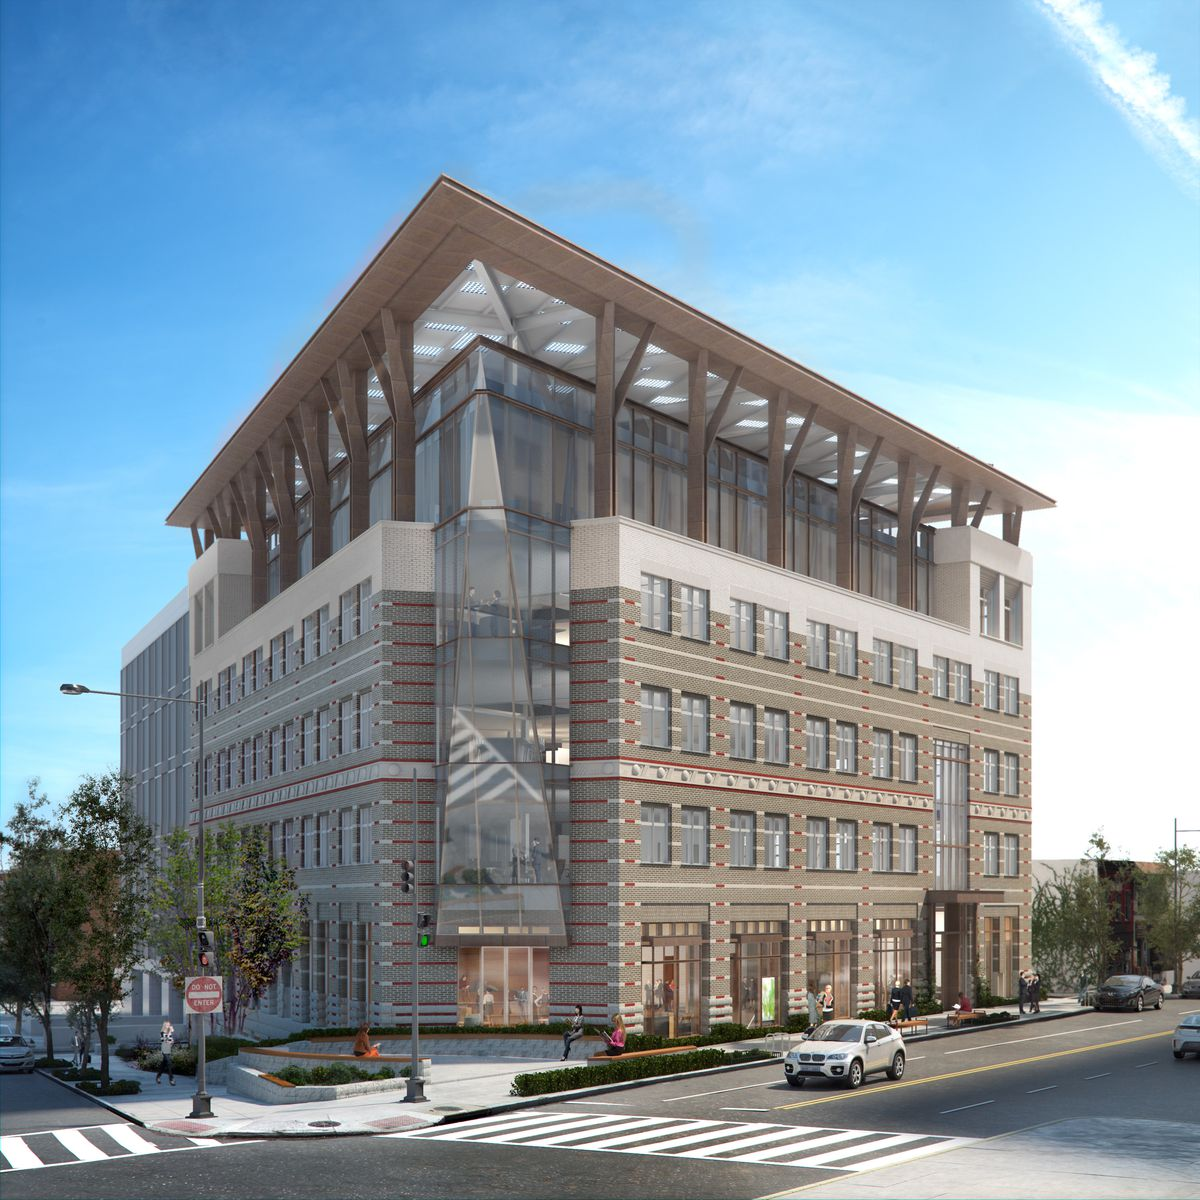 The American Geophysical Union's new headquarters in Washington, DC, a net-zero-energy building.